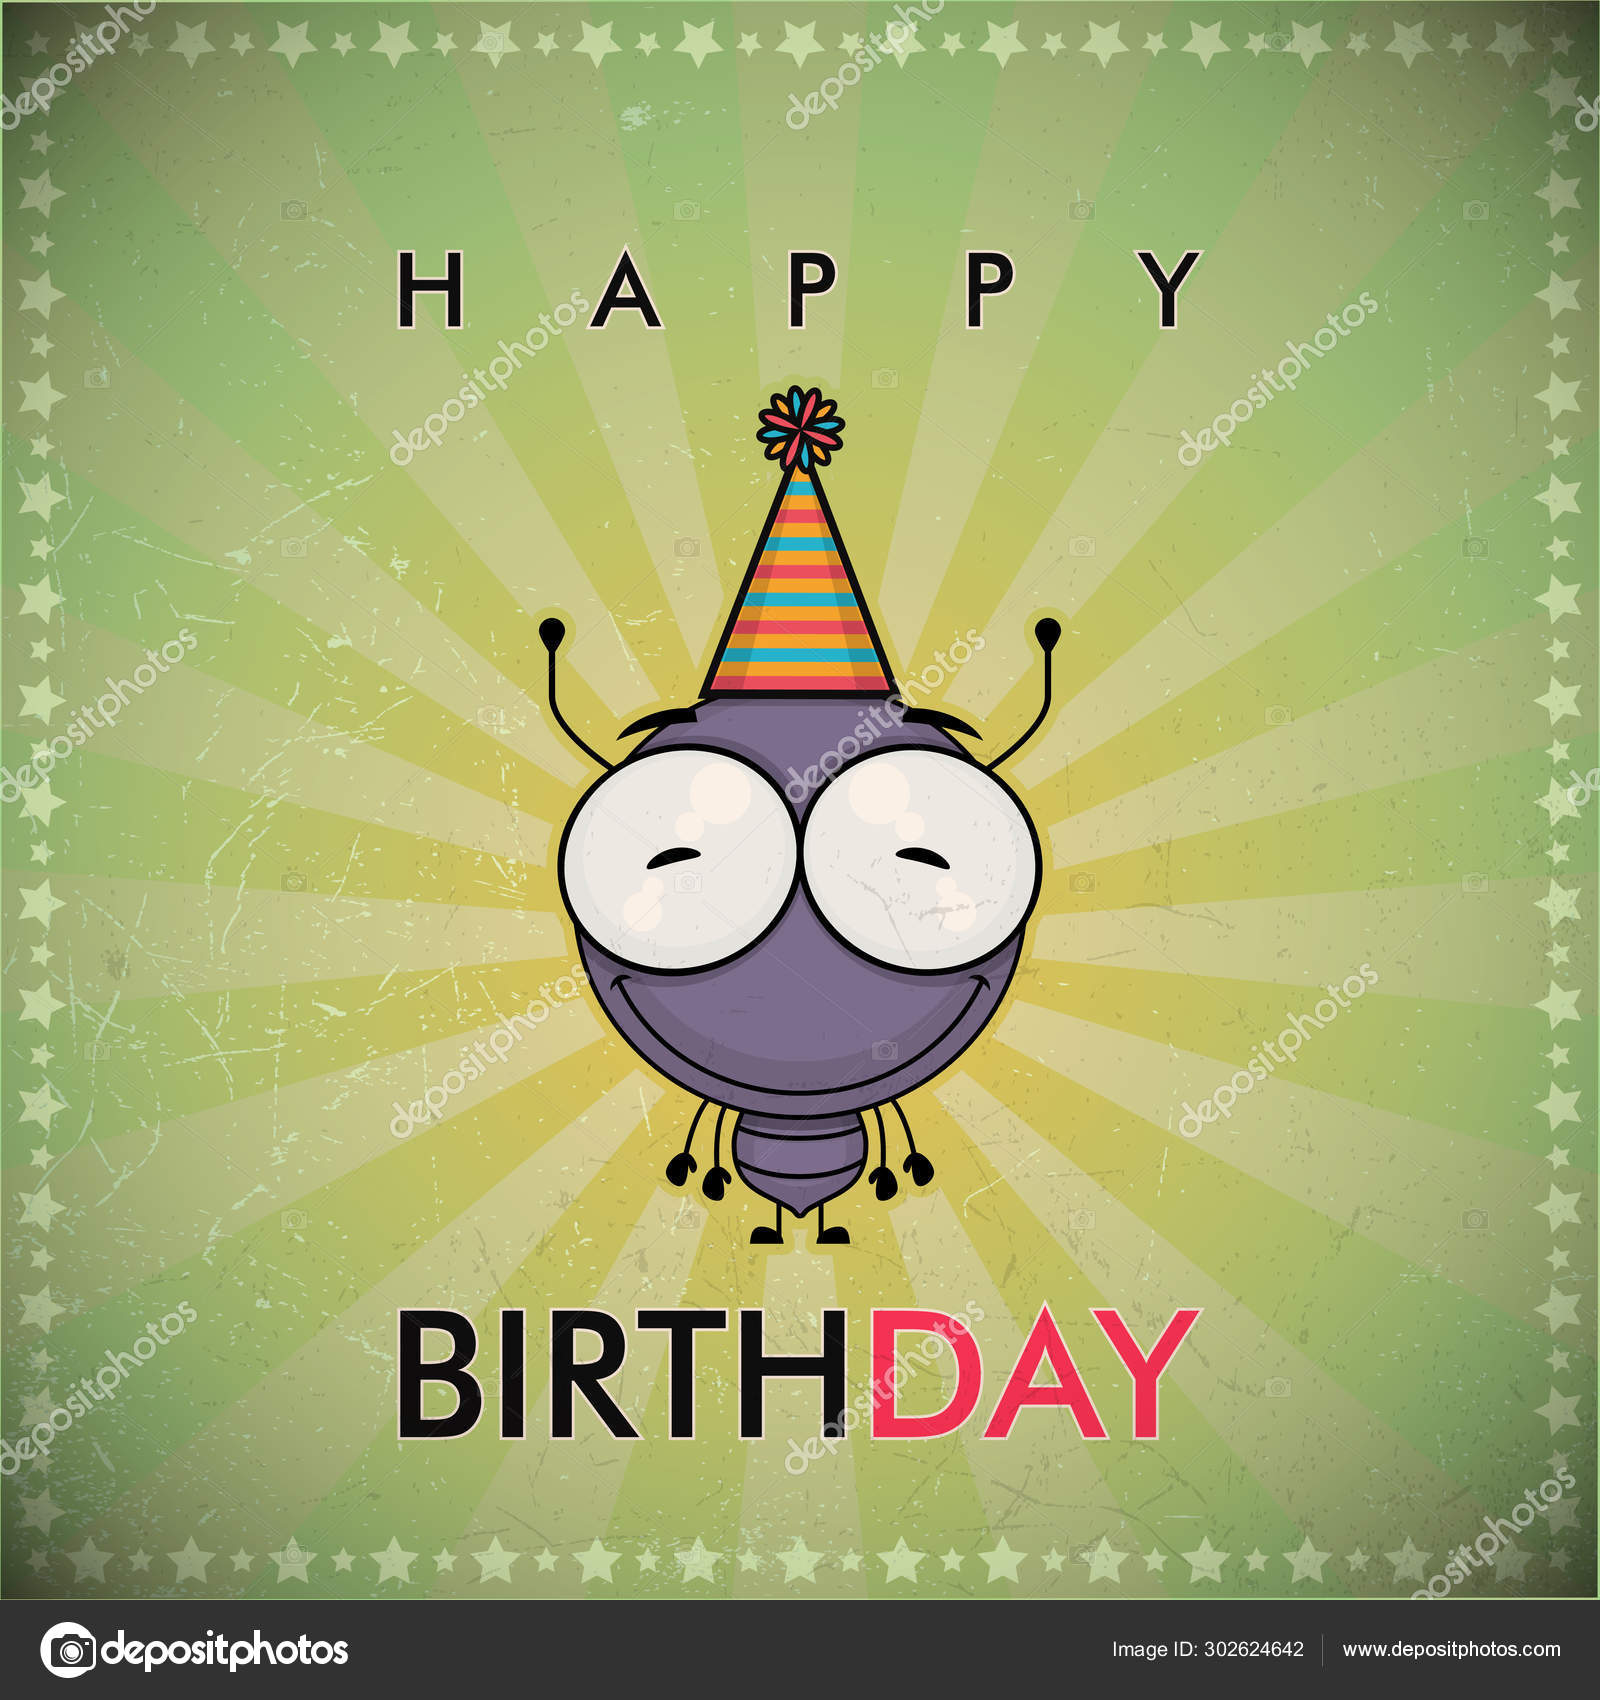 Funny Happy Birthday Greeting Card With Cute Cartoon Ant Vector Image By C R Lion O Vector Stock 302624642